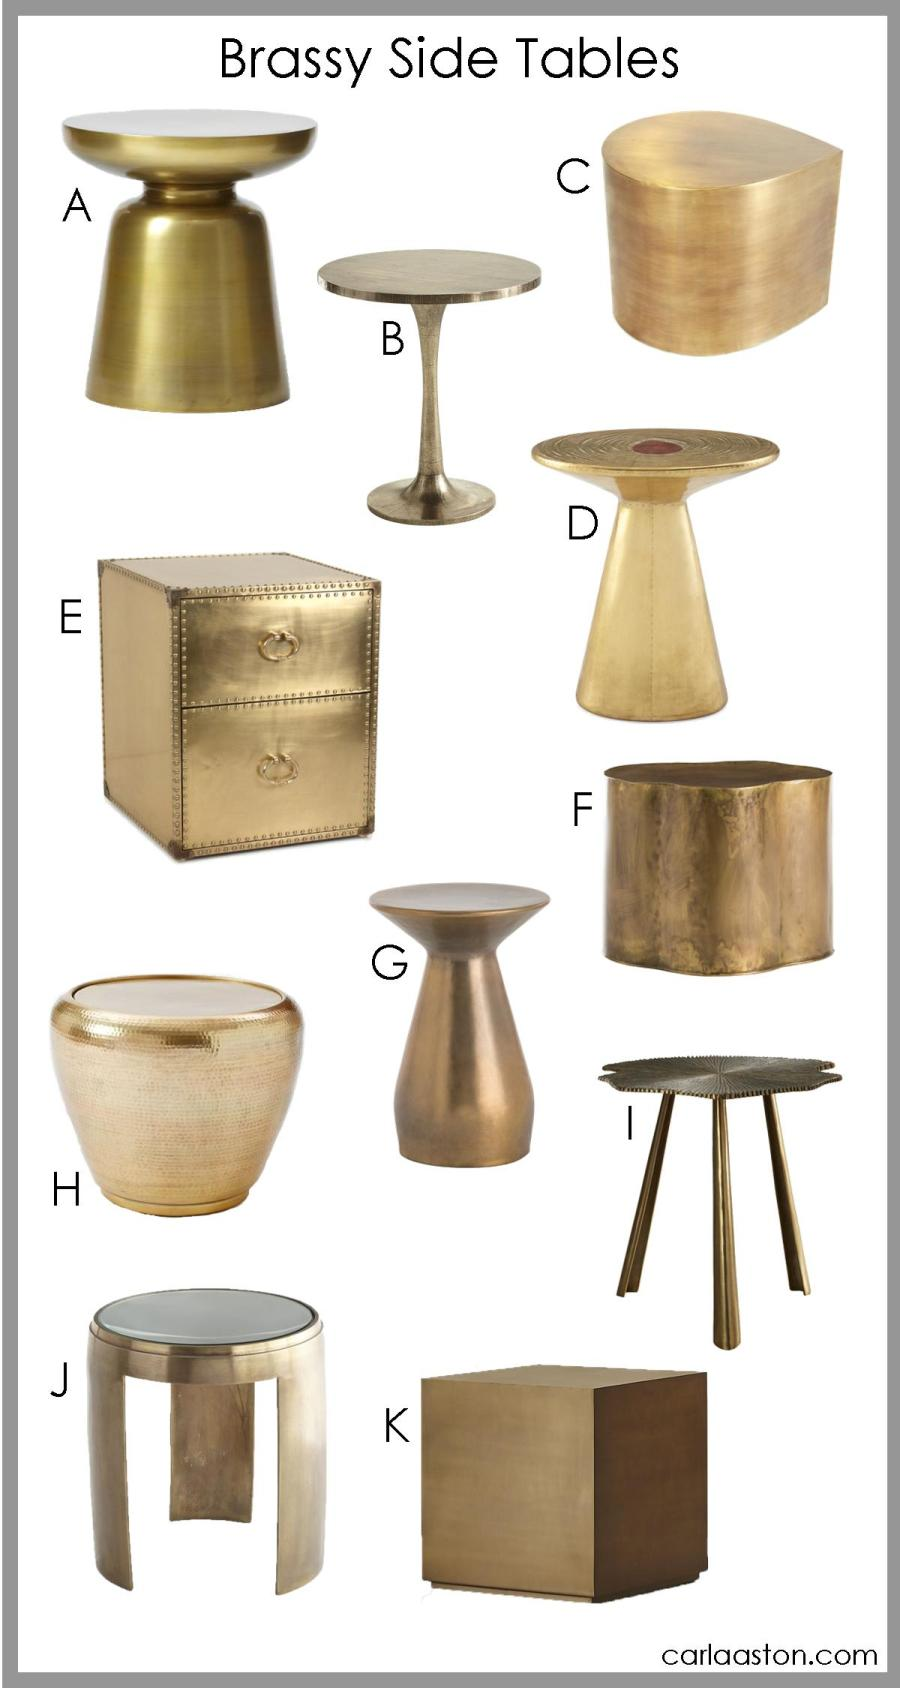 Brassy Side Tables.jpg